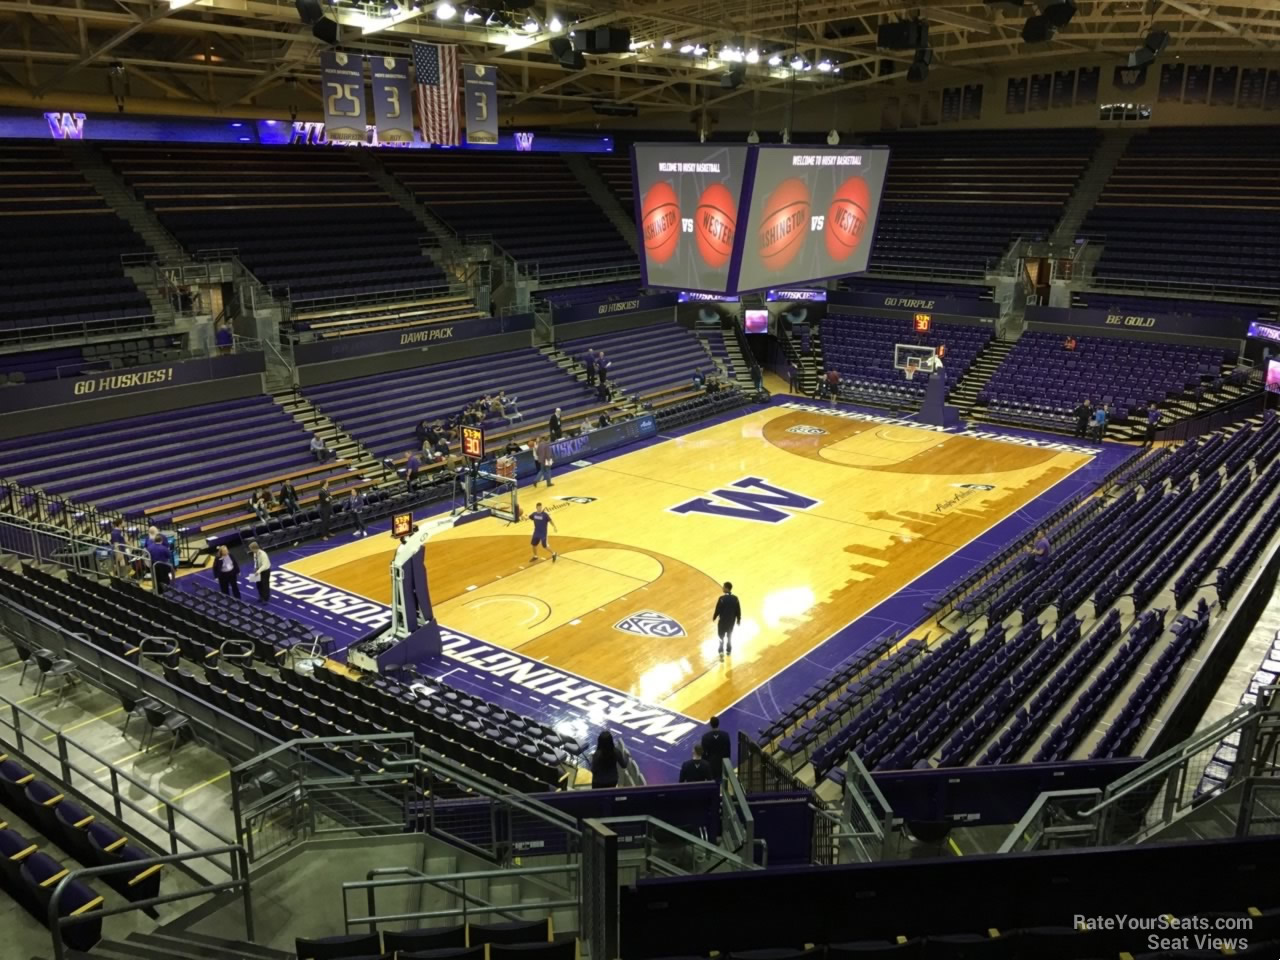 Seat View for Alaska Airlines Arena Section 10, Row 24